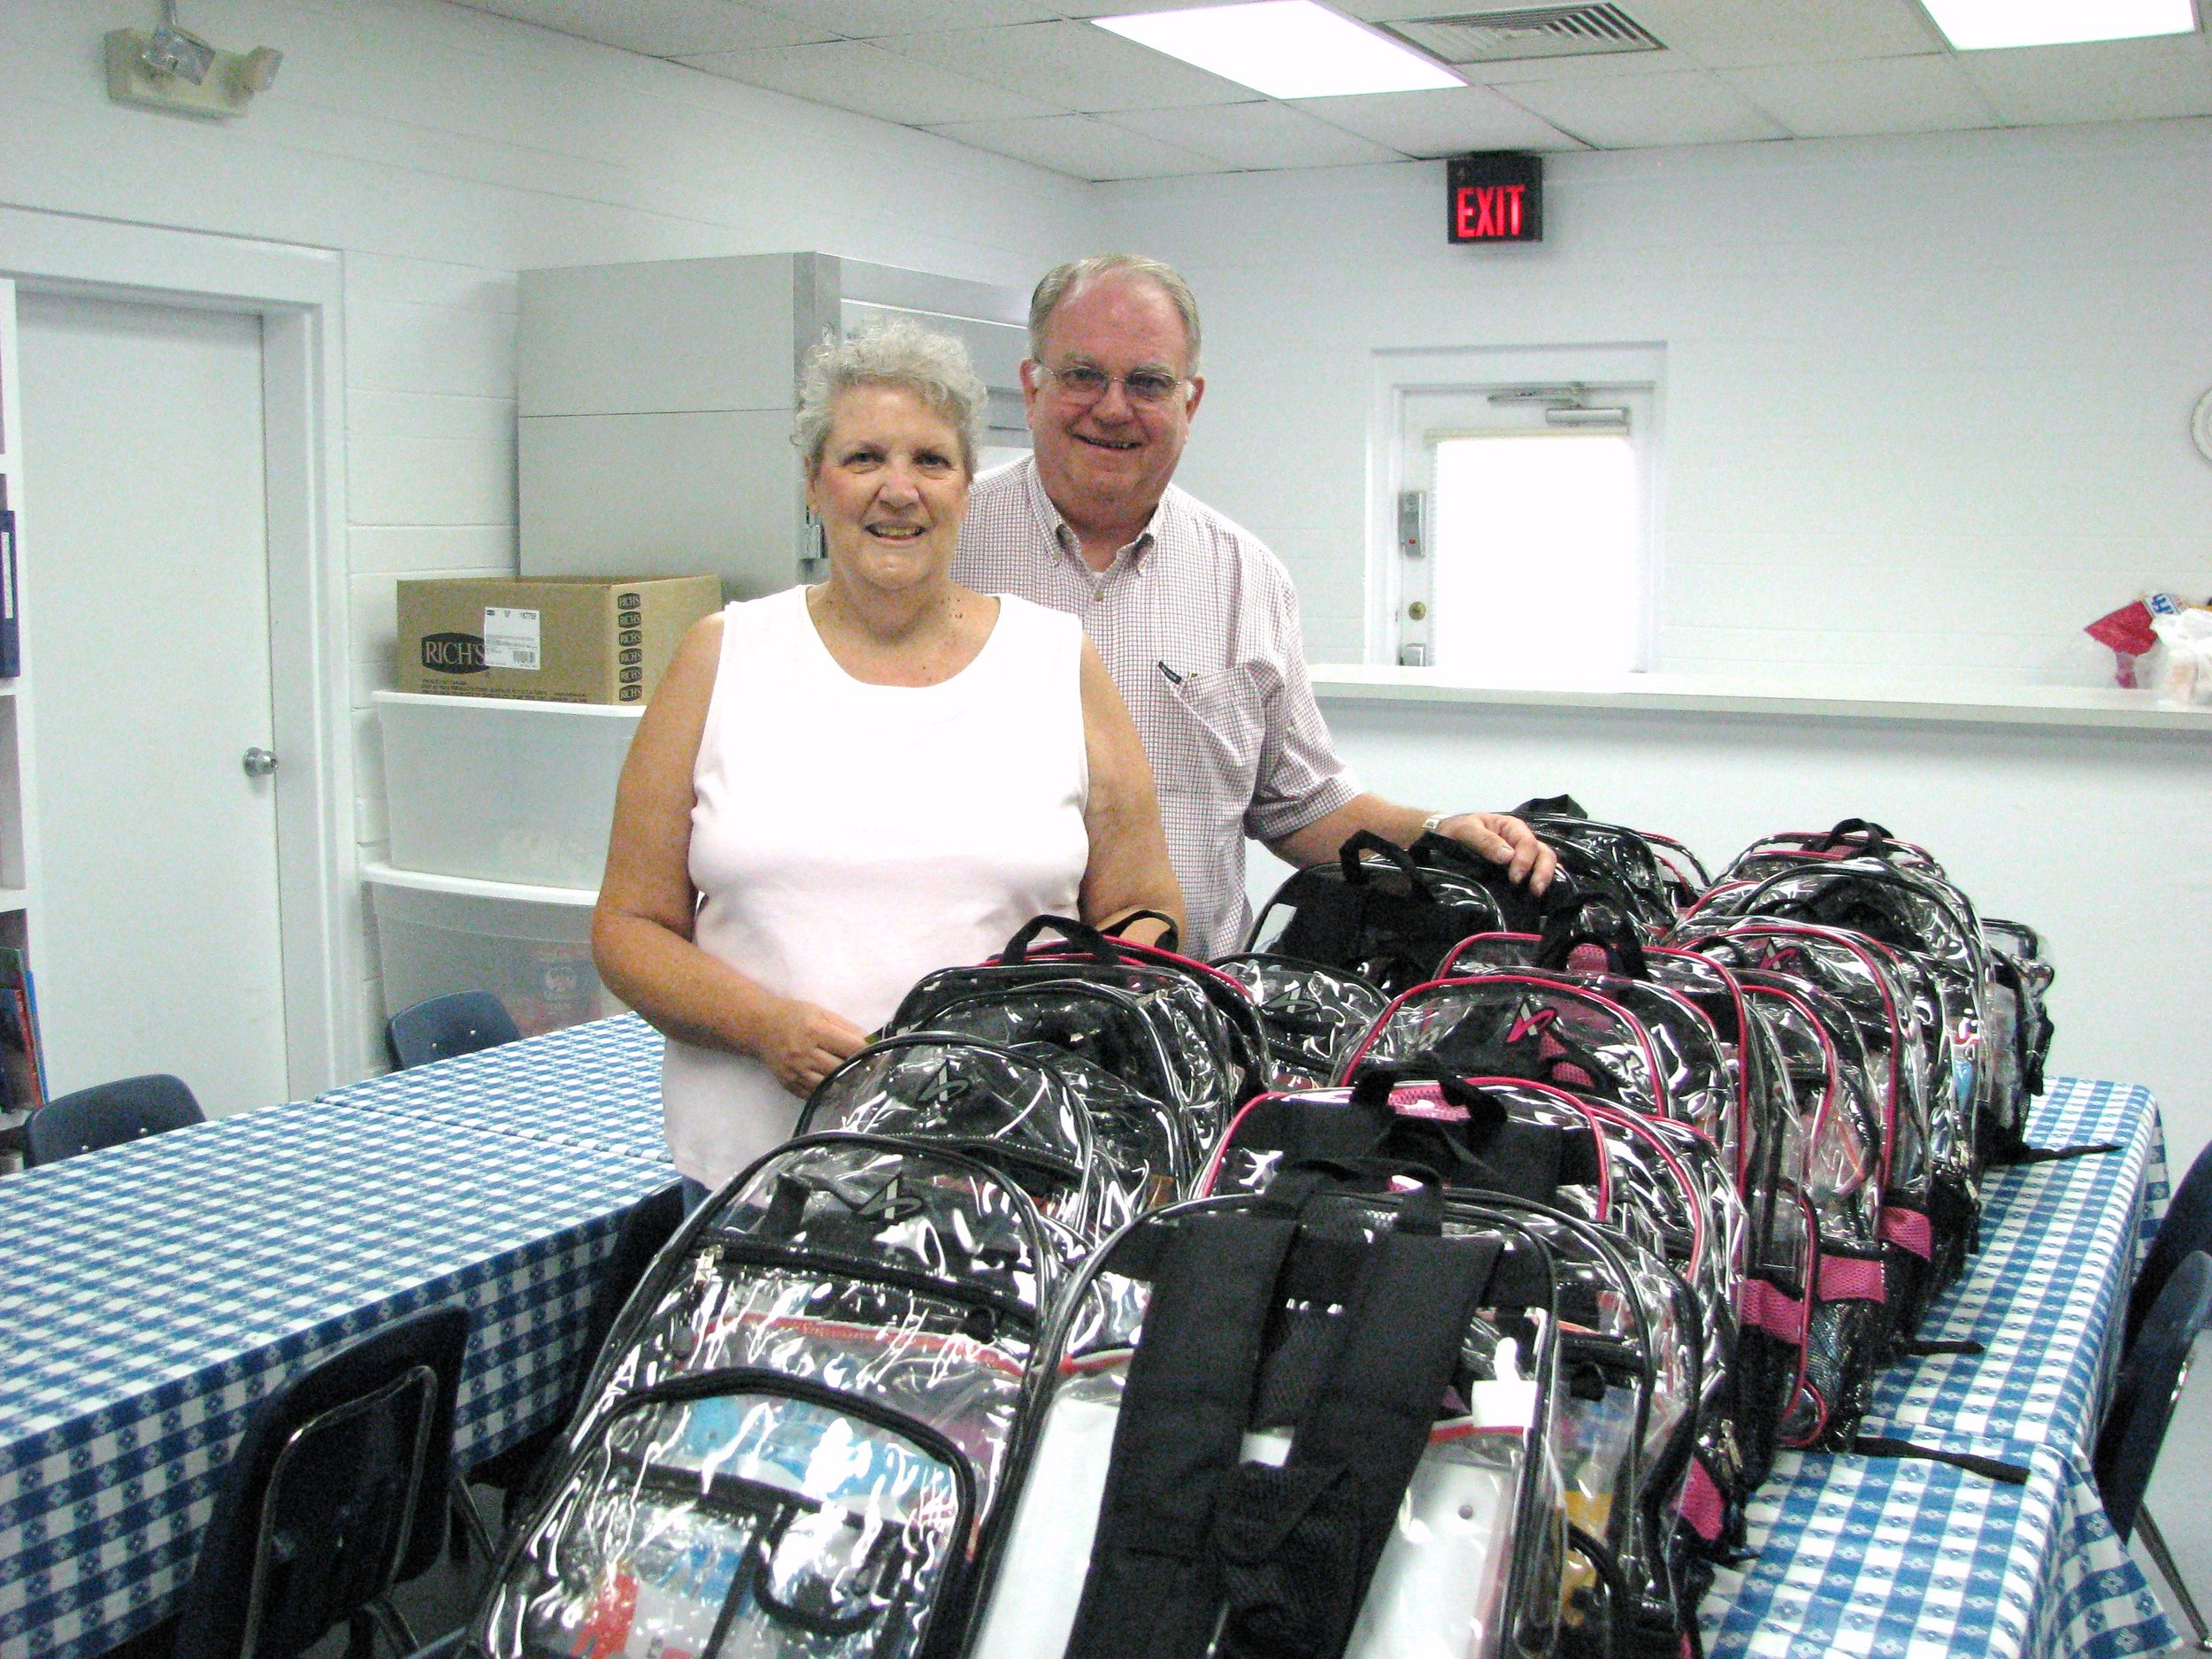 Anglican-Church-of-the-Redeemer-Book-Bag-Delivery-09-005.jpg